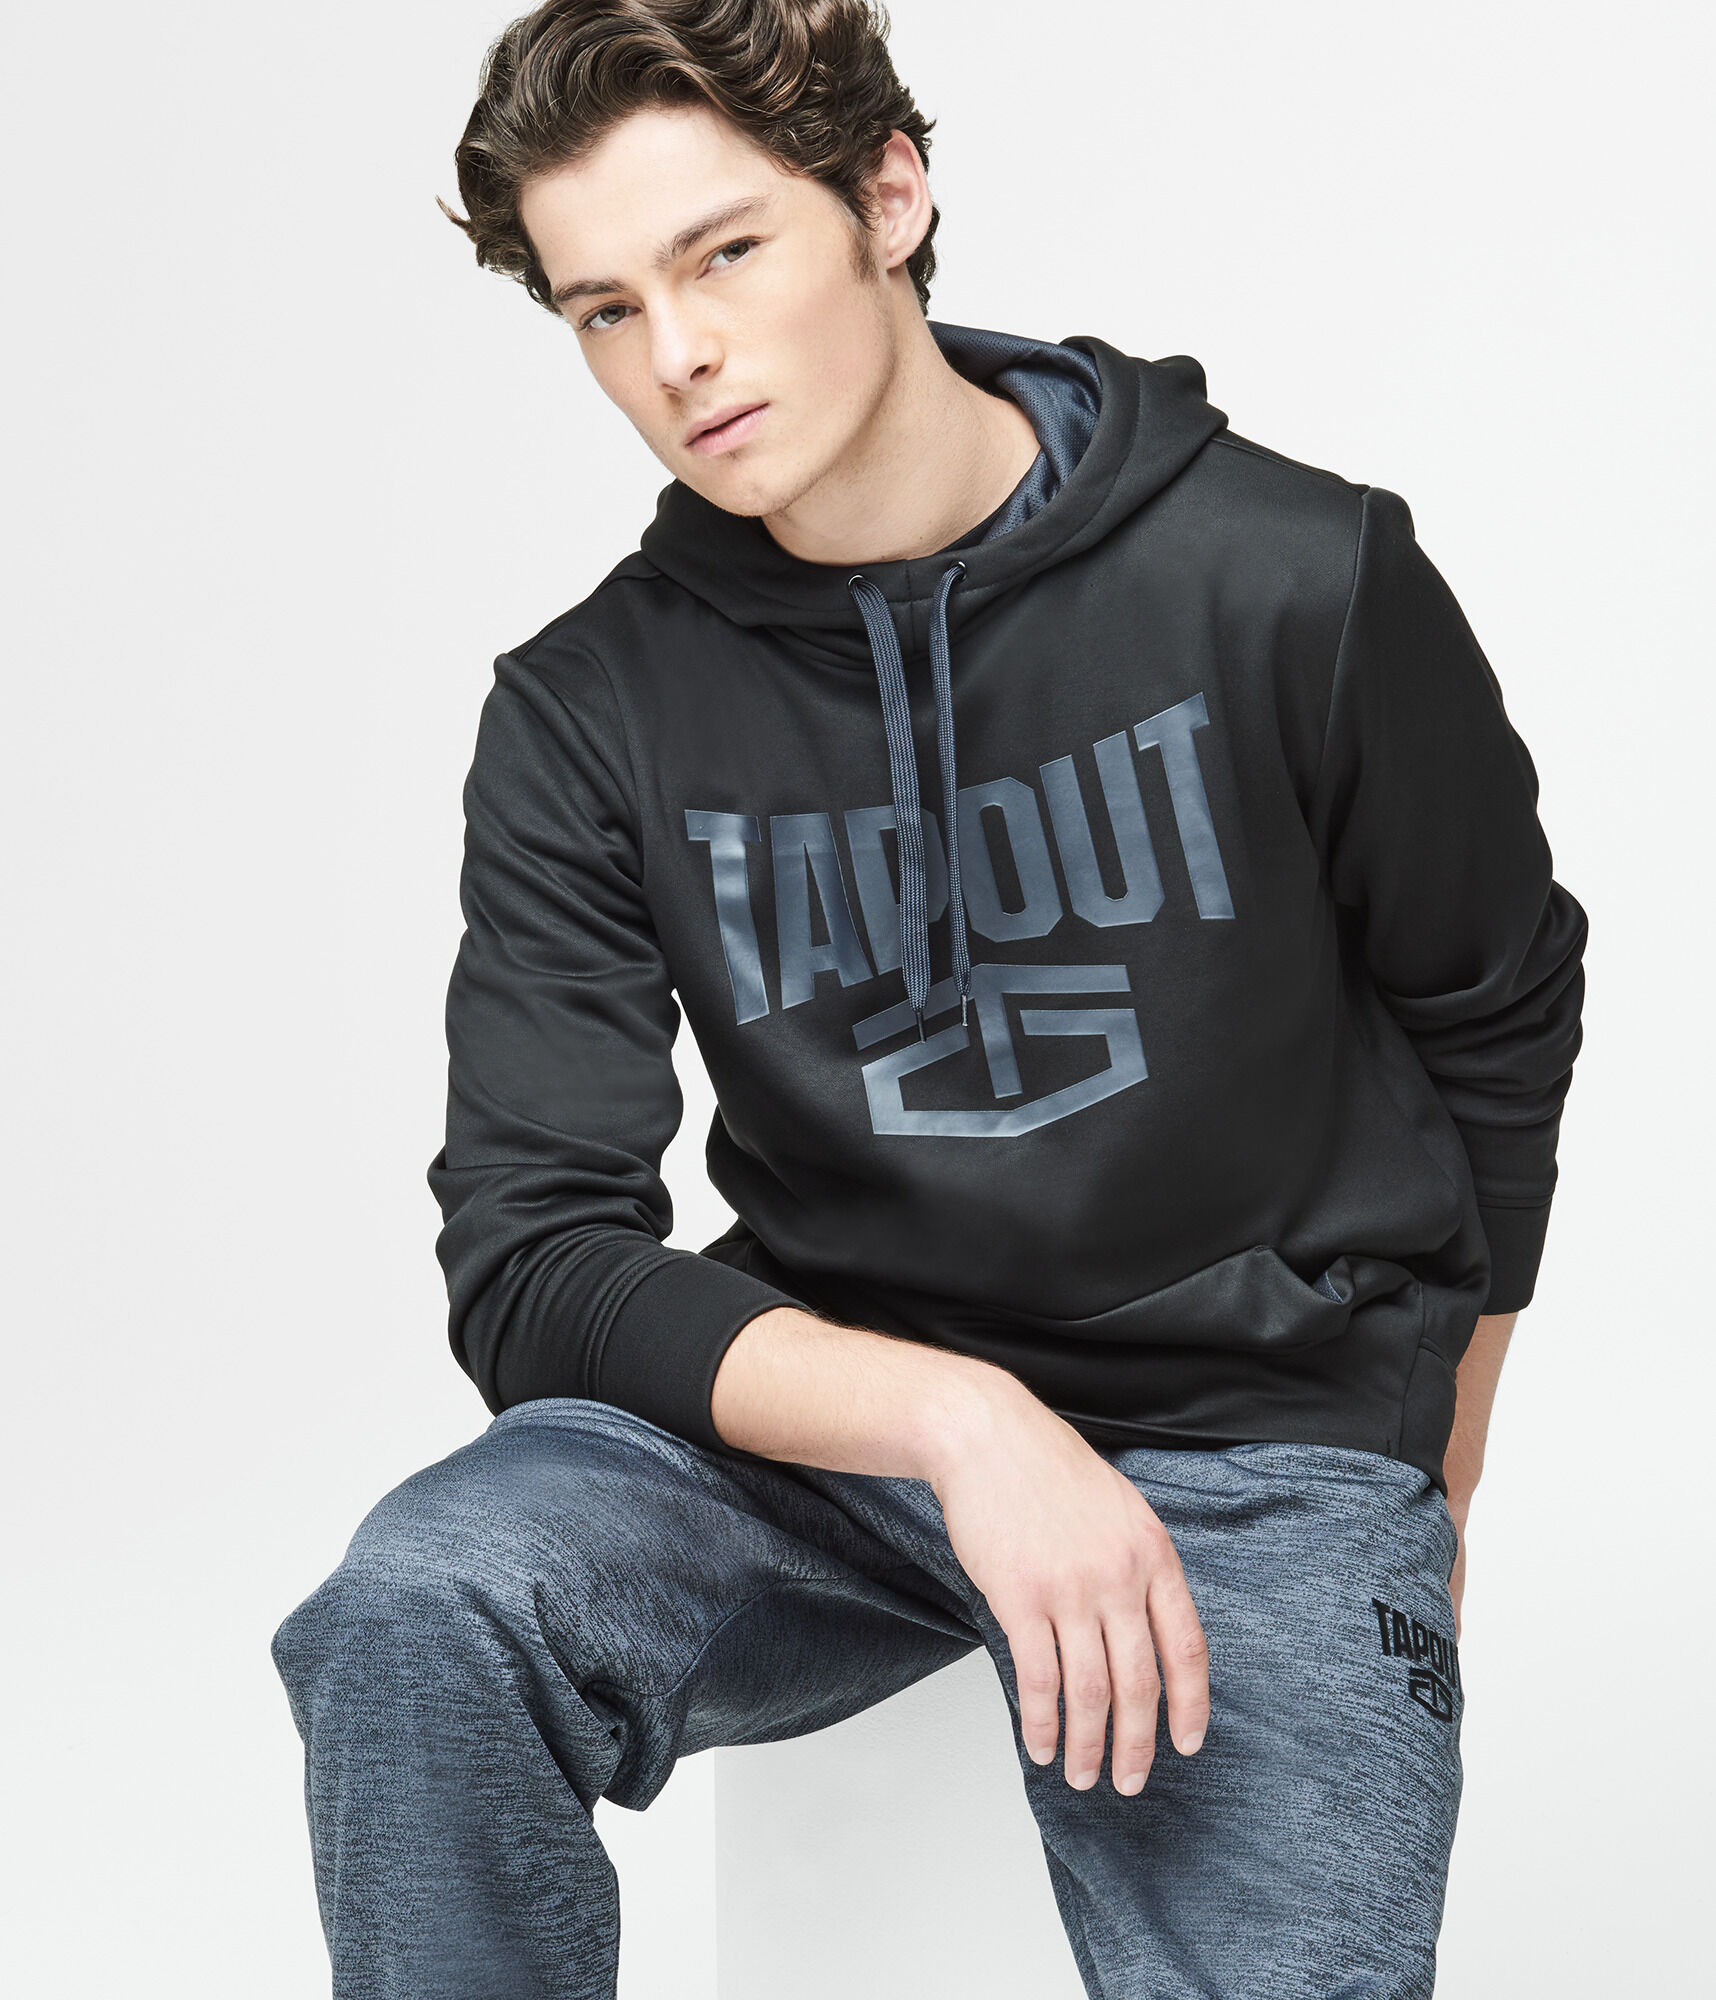 Tapout hoodies cheap